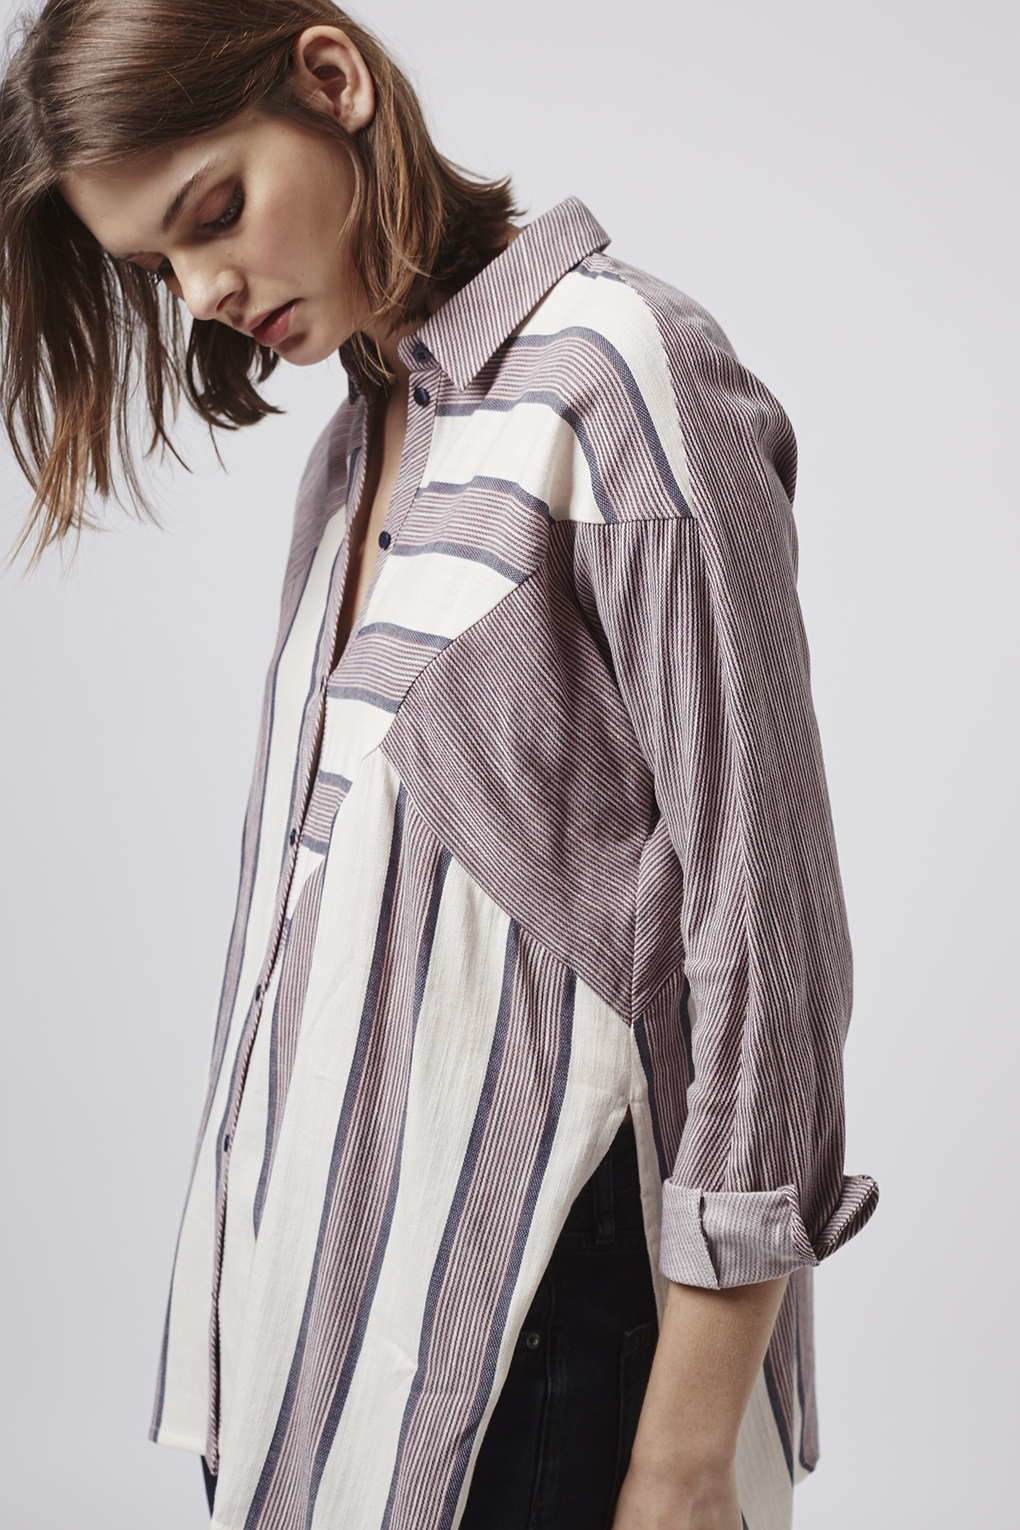 efb4e0d328 TOPSHOP Casual Mix Stripe Shirt in Gray - Lyst